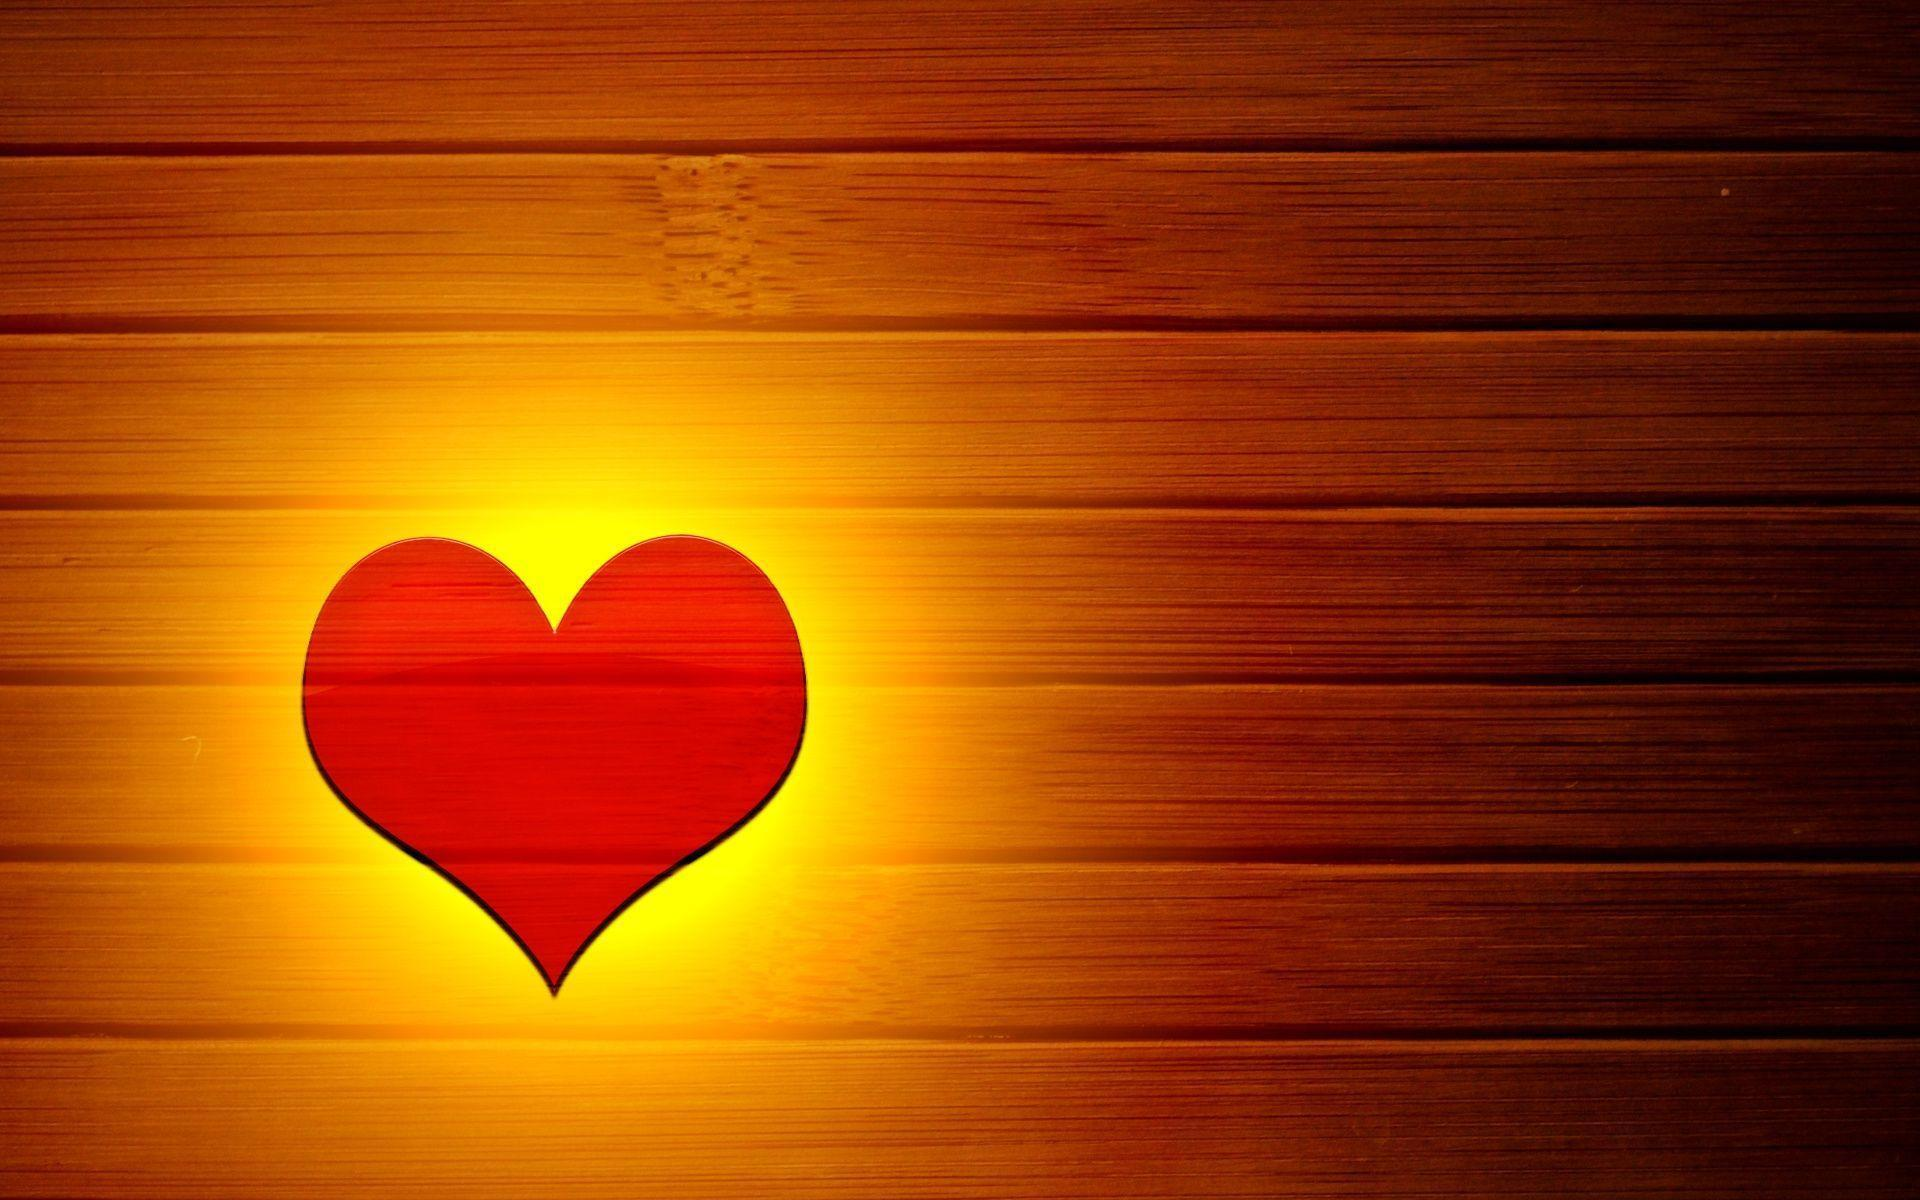 Love Wallpaper For Desktop Best : Love Backgrounds Wallpapers - Wallpaper cave